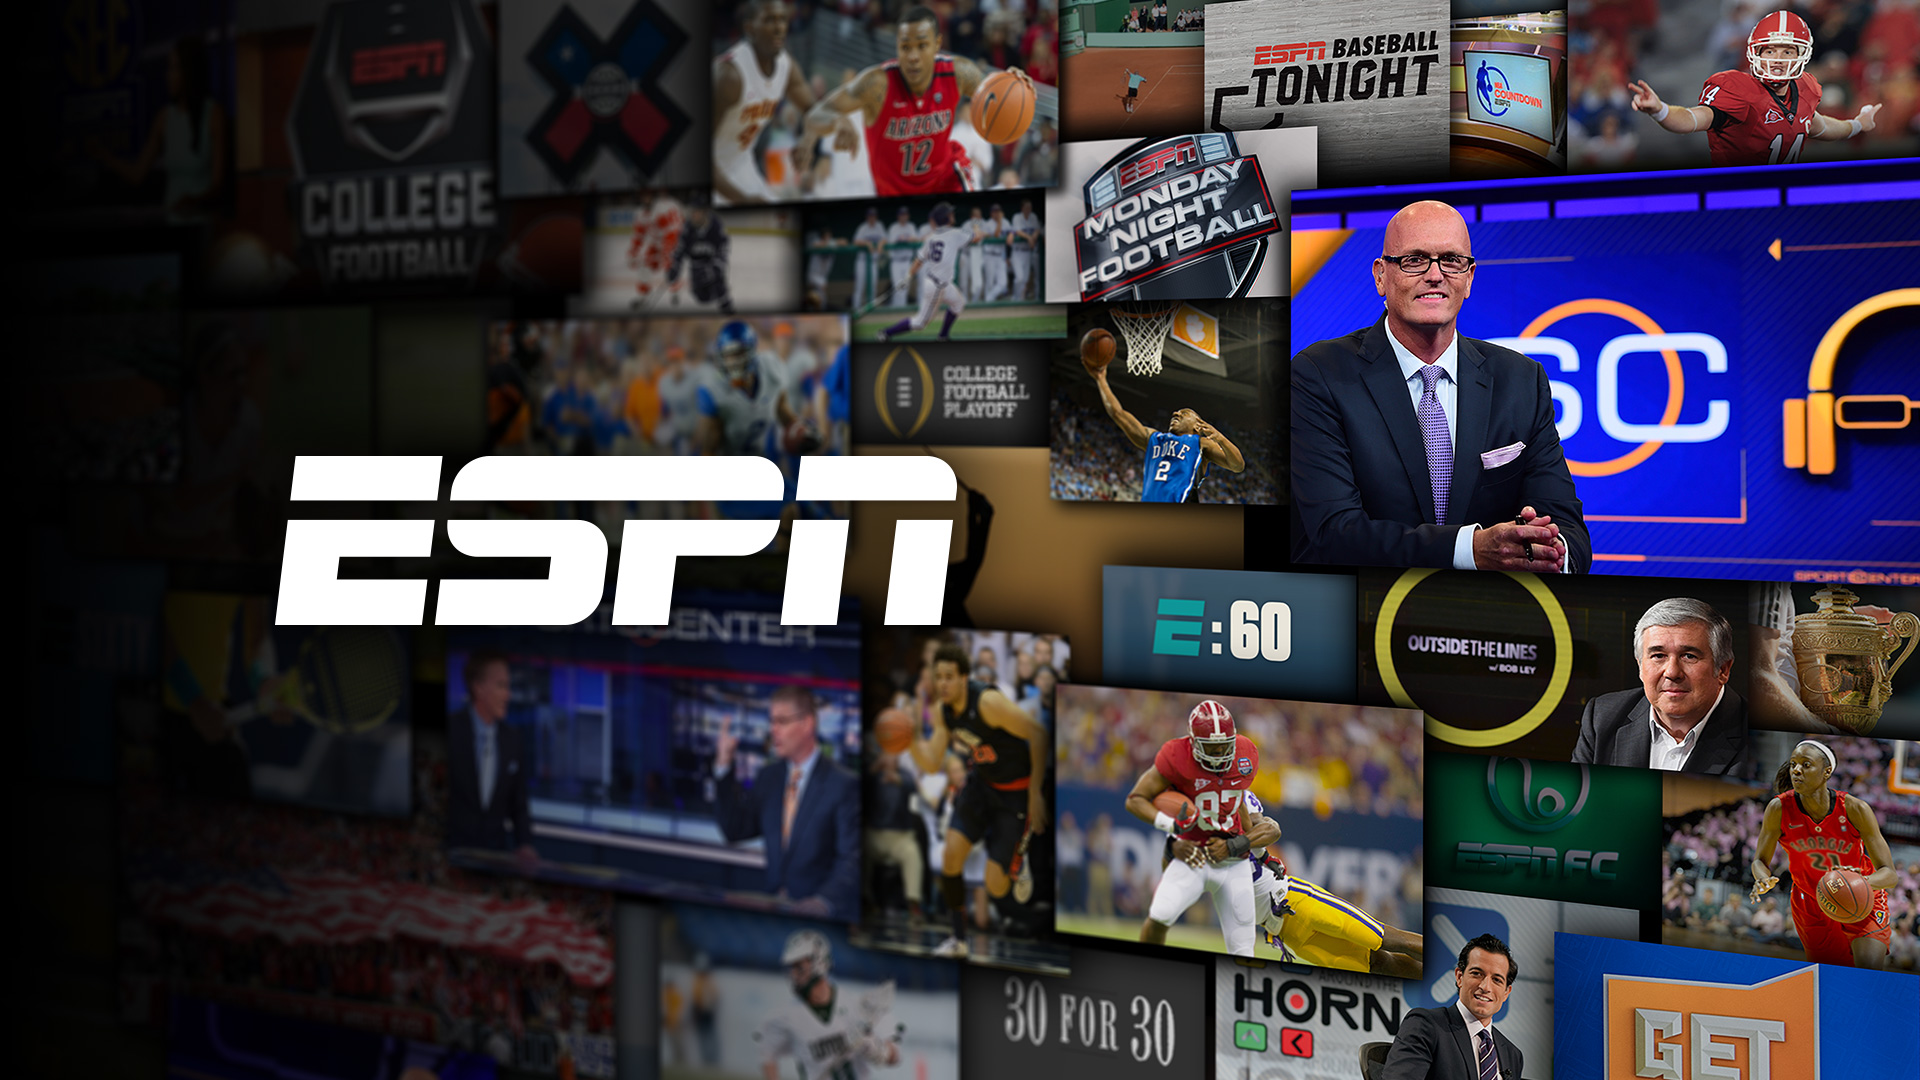 Where to Find the Best NFL Highlights